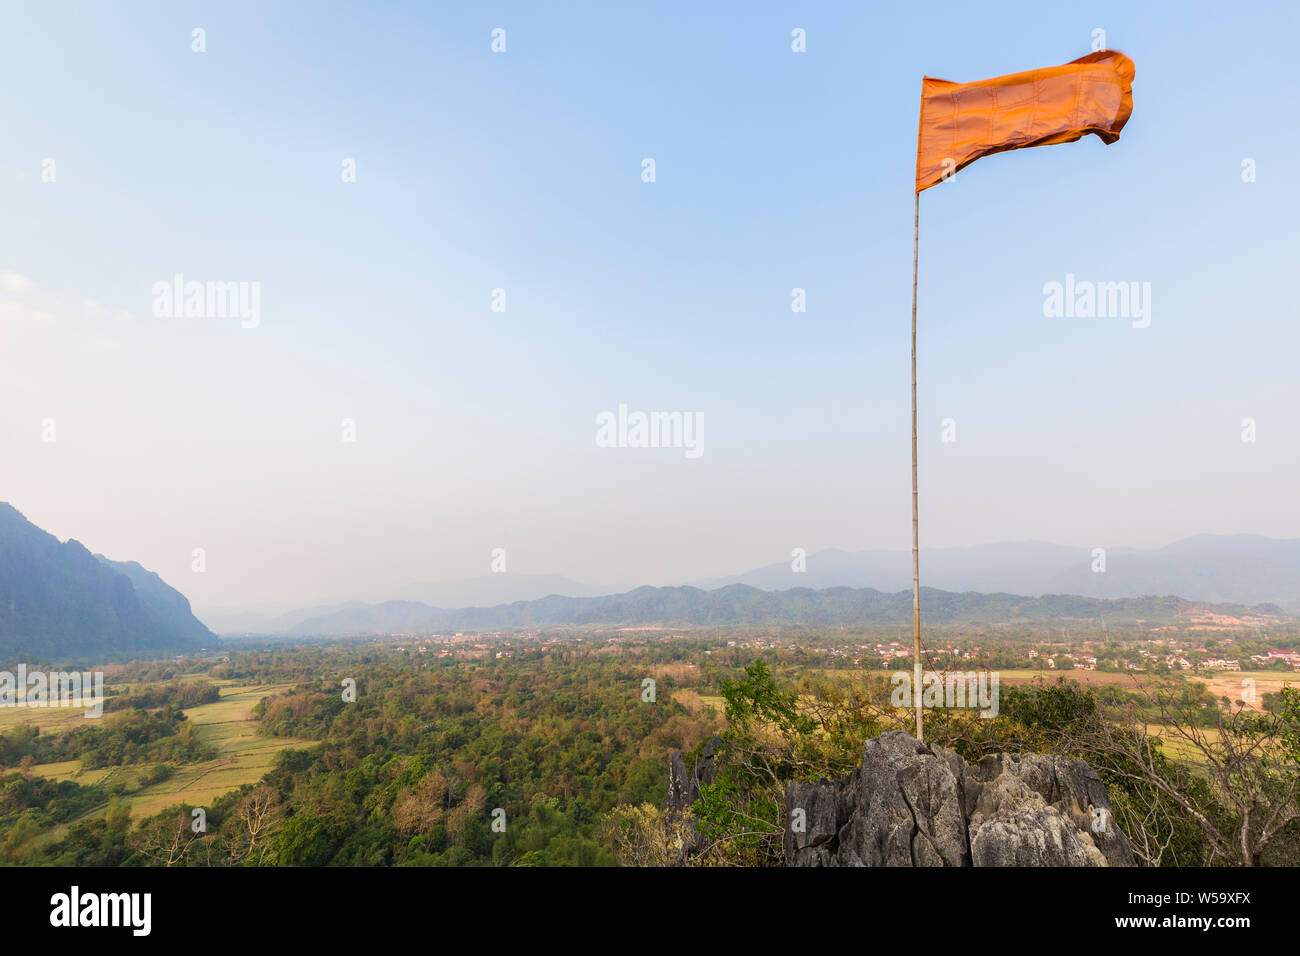 Flag fluttering atop the Pha Poak hill. Beautiful view of fields and mountains from above near Vang Vieng, Vientiane Province, Laos, on a sunny day. Stock Photo